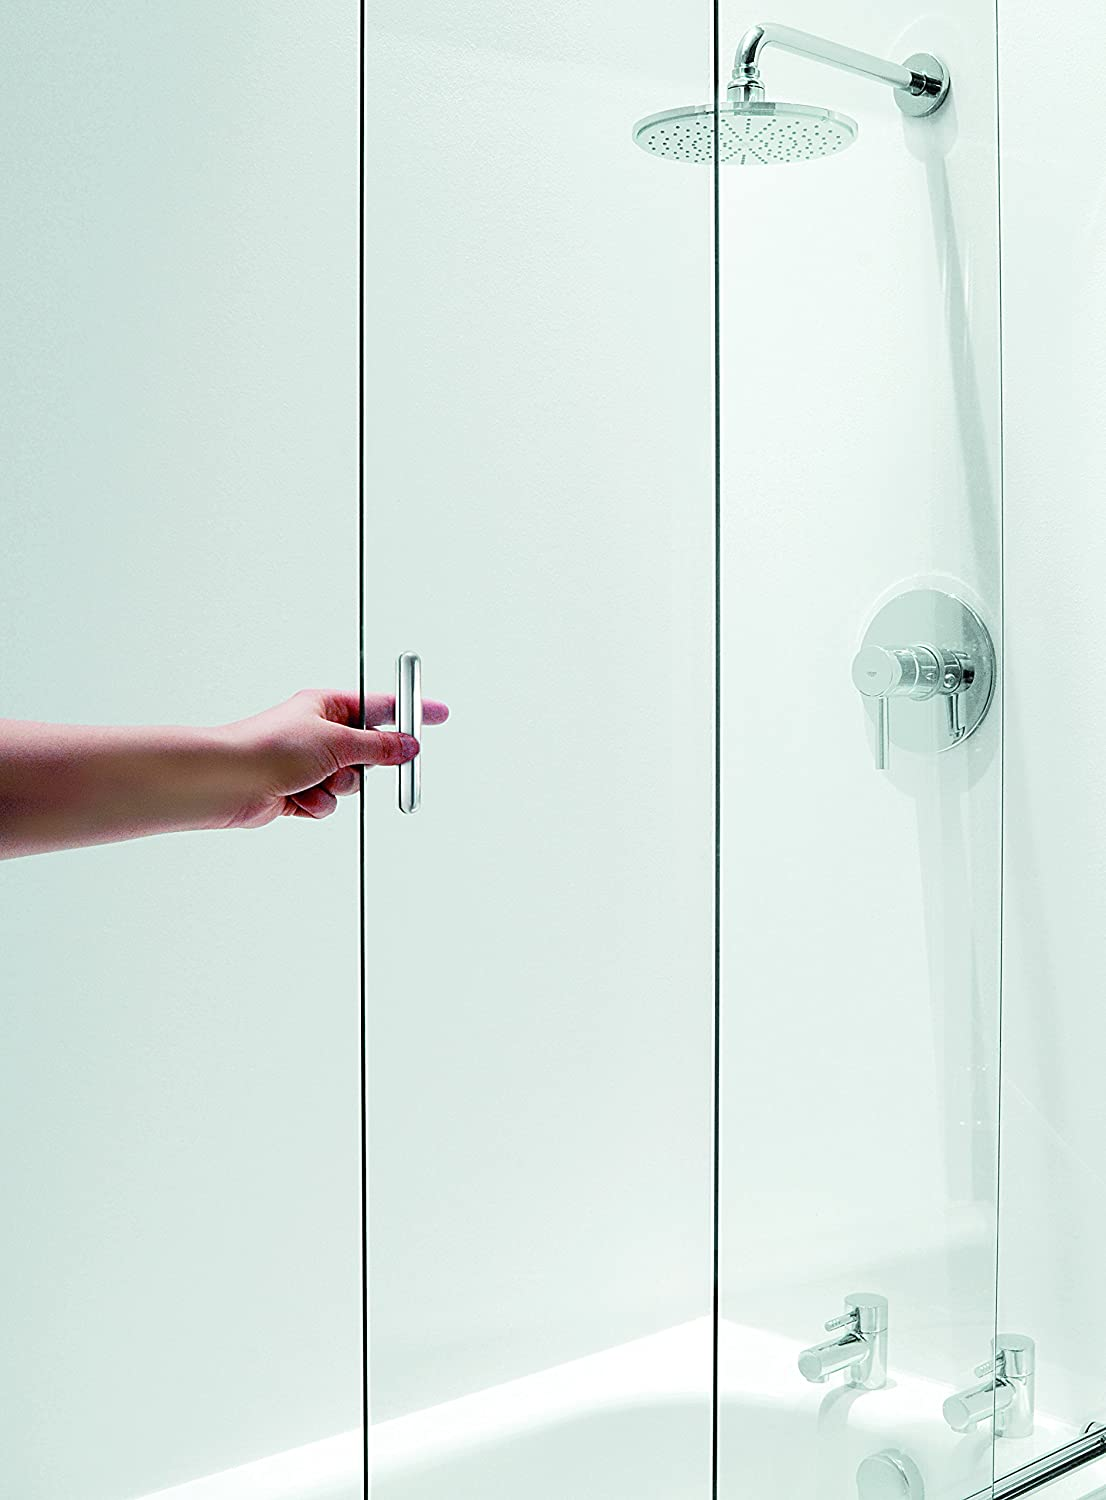 coram showers ssl2105cuc 1400mm x 650 1065mm 2 panel sliding coram showers ssl2105cuc 1400mm x 650 1065mm 2 panel sliding bath screen with 5mm thick clear glass chrome amazon co uk diy tools